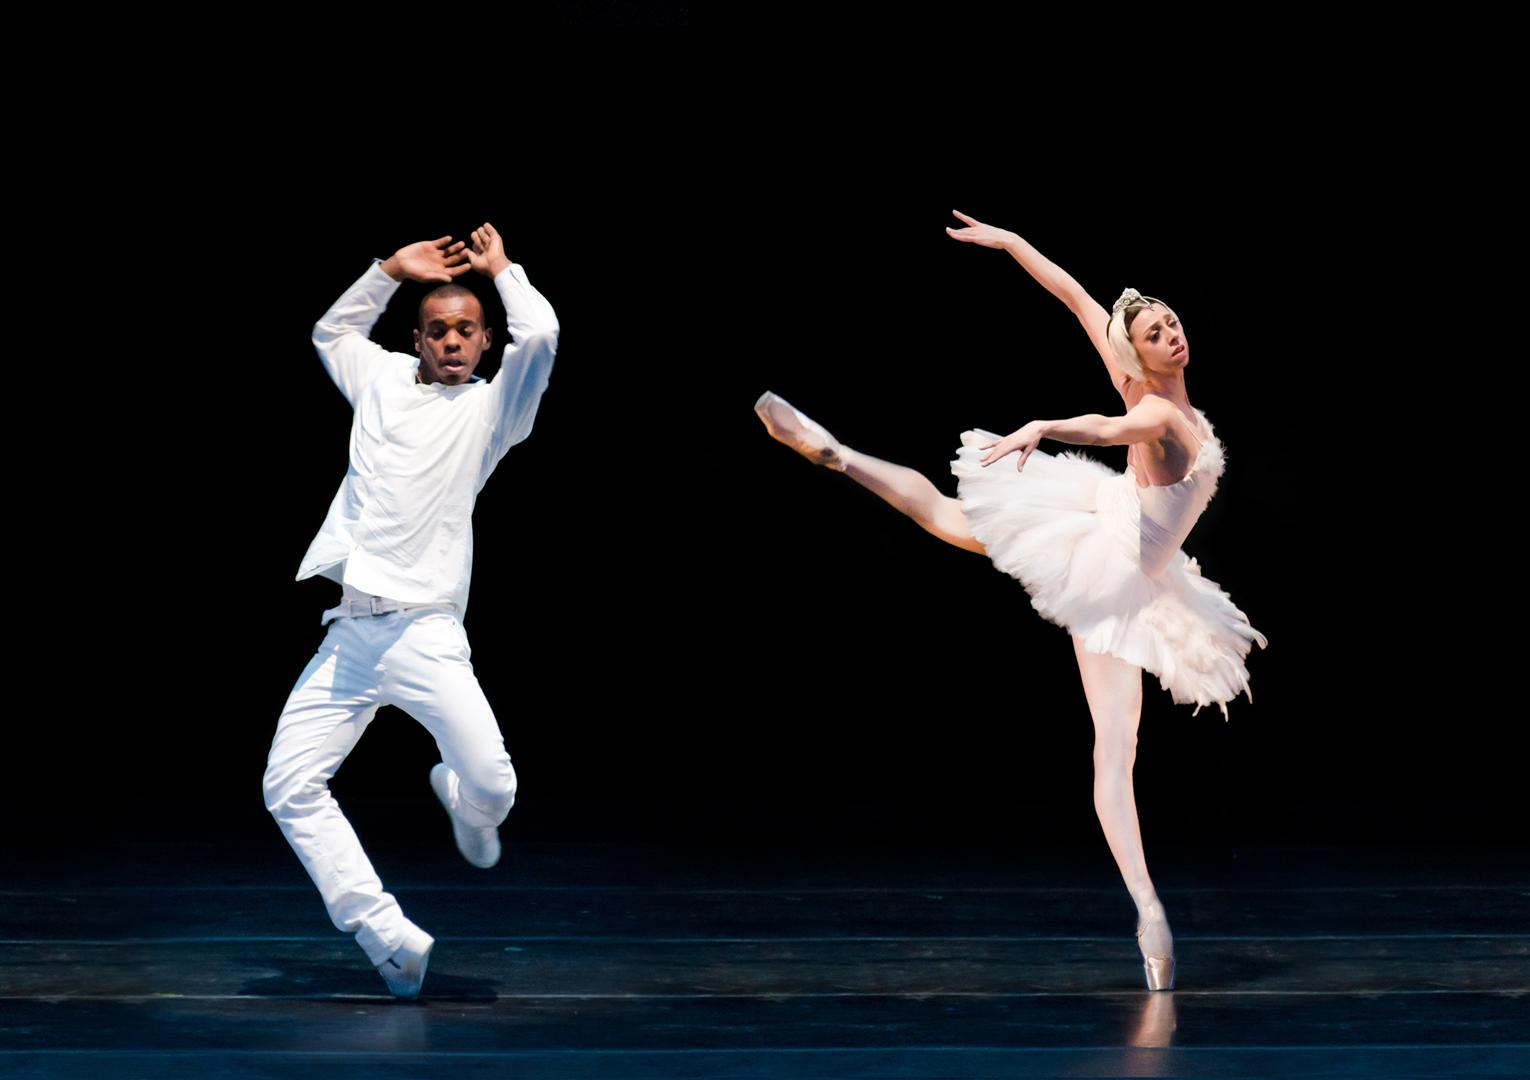 Nina-Ananiashvili-Lil-Buck-perform-two-alternate-versions-of-_The-Dying-Swan_-at-the-2013-Gala-Photo_-Lisa-Voll